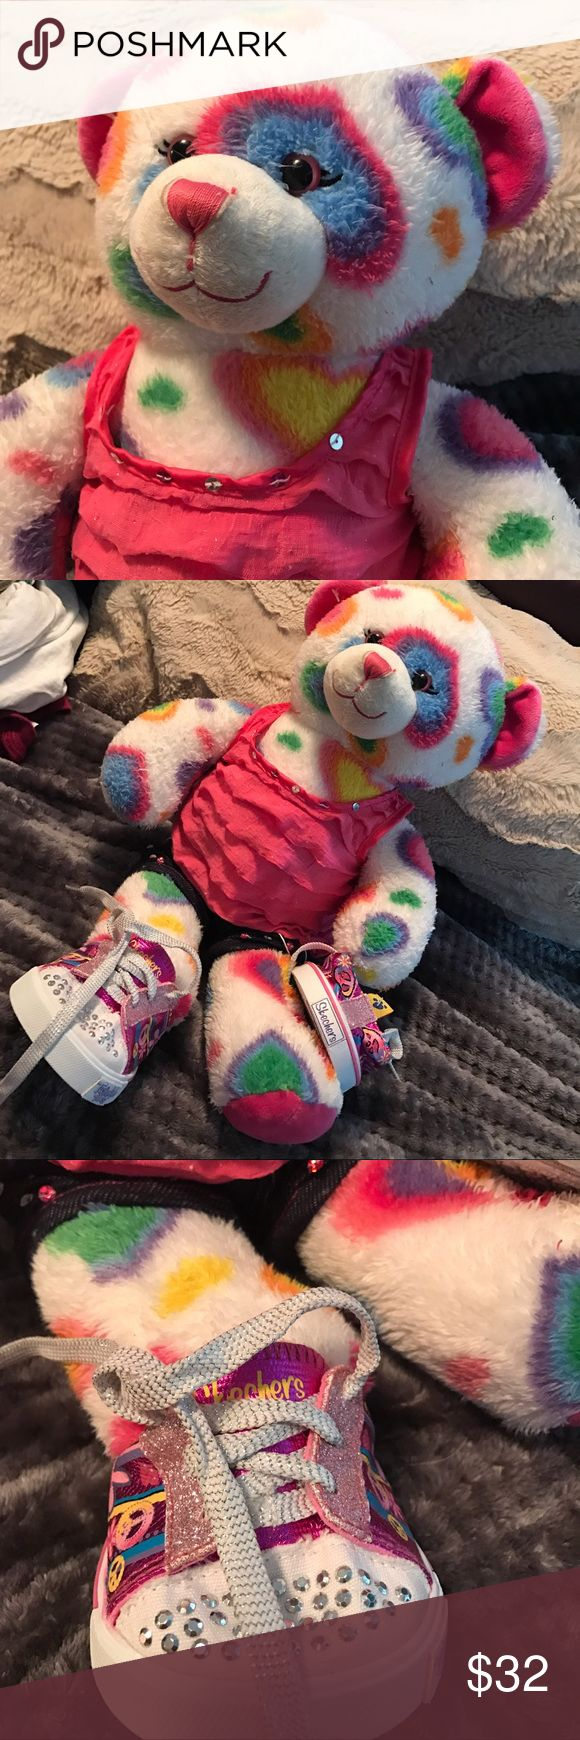 Sweet build a bear 🐻 Medium sized with clothing including sketchers tennis shoes build a bear Other